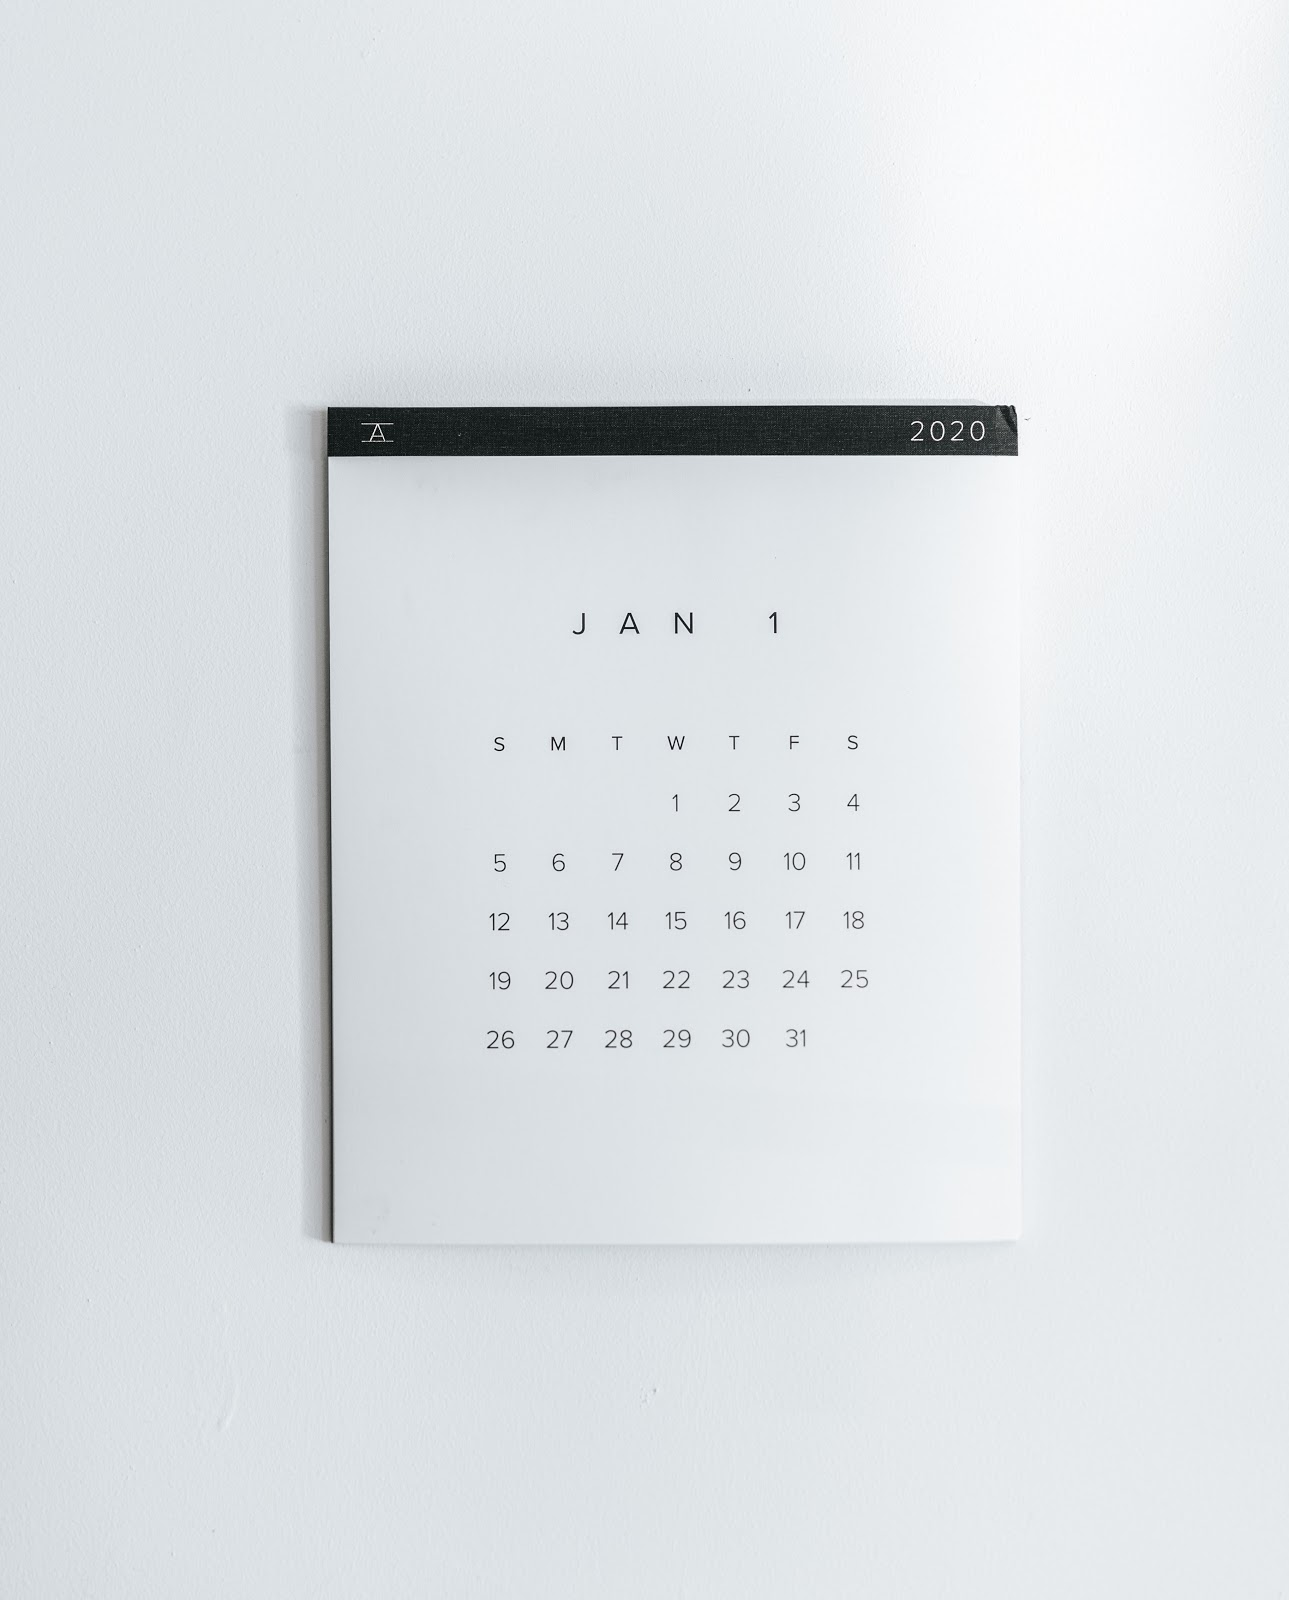 A simple wall calendar with January 2020 showing.